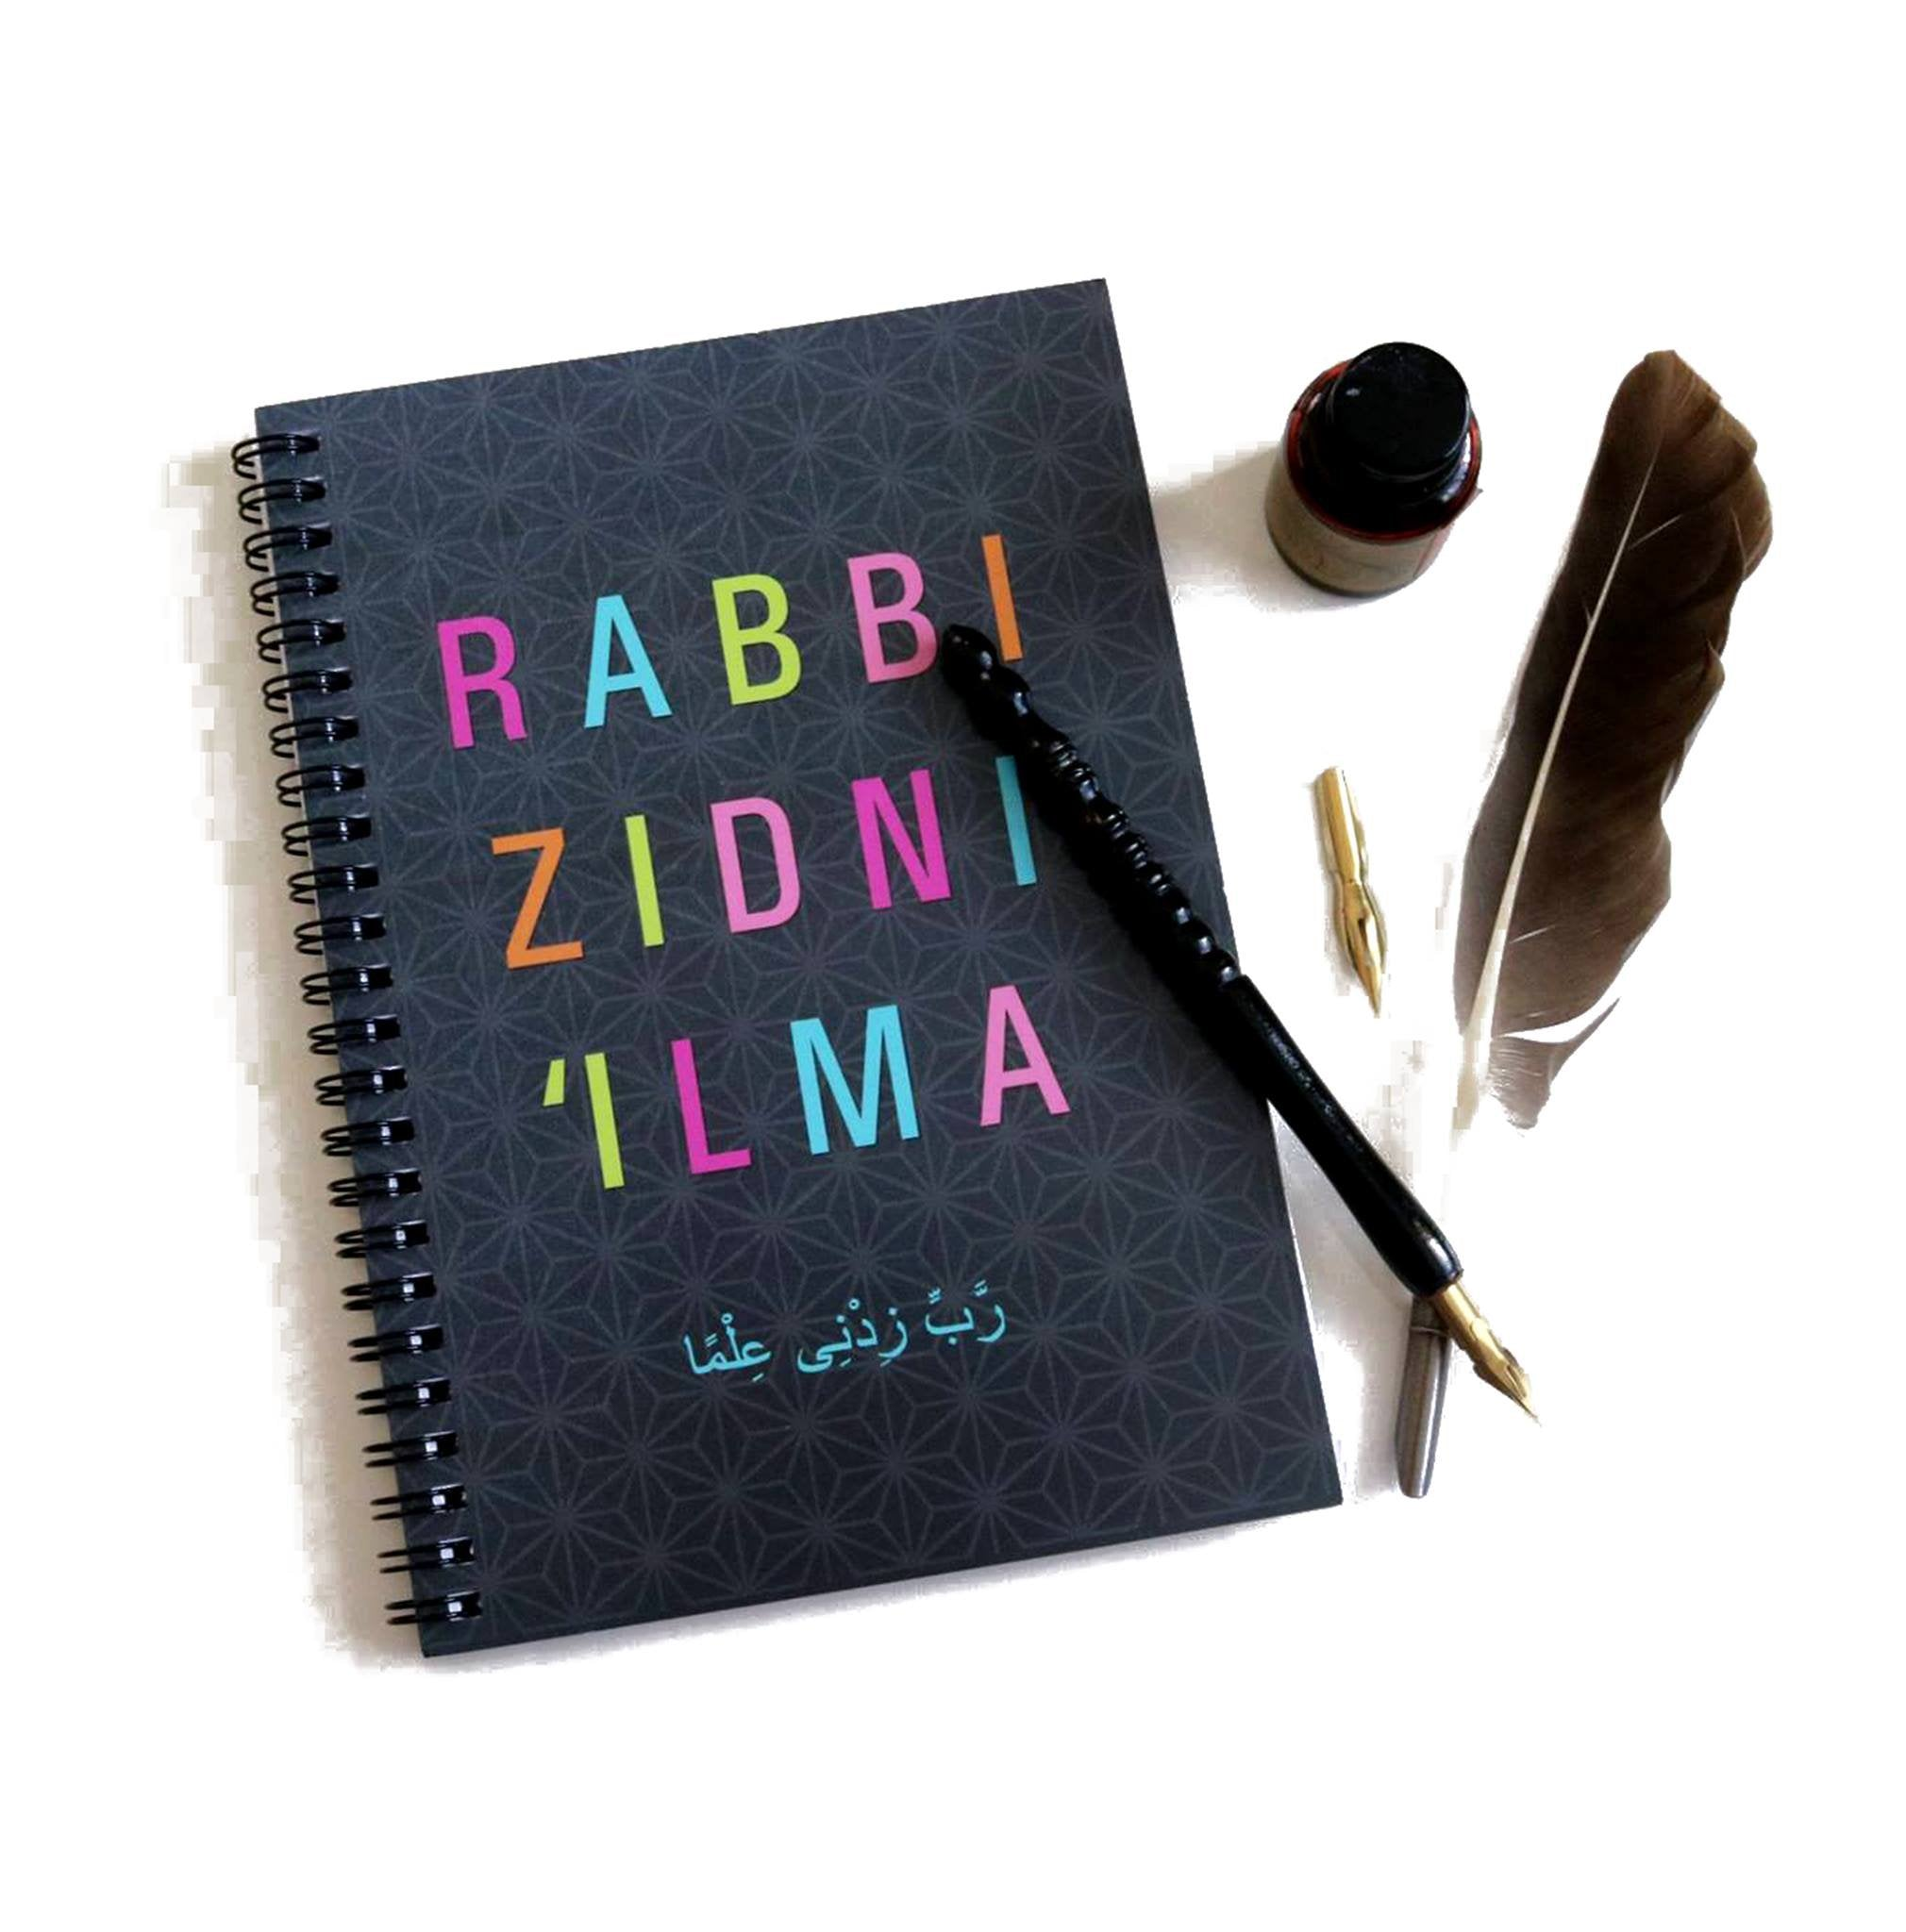 Rabbi Zidni 'Ilma (with English & Arabic) Notebook